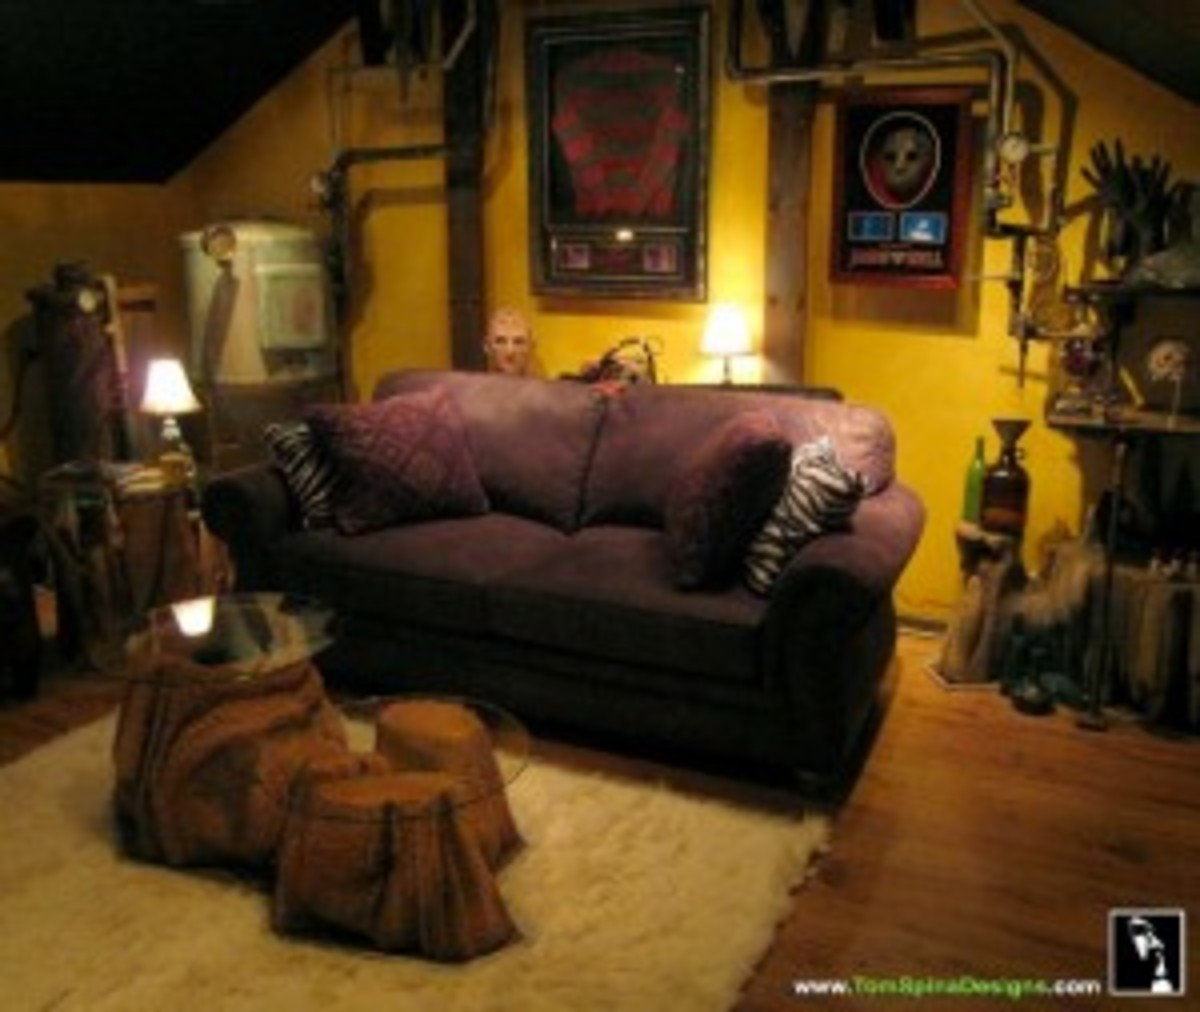 Unique man cave design by Tom Spina Designs. www.tomspinadesigns.com.